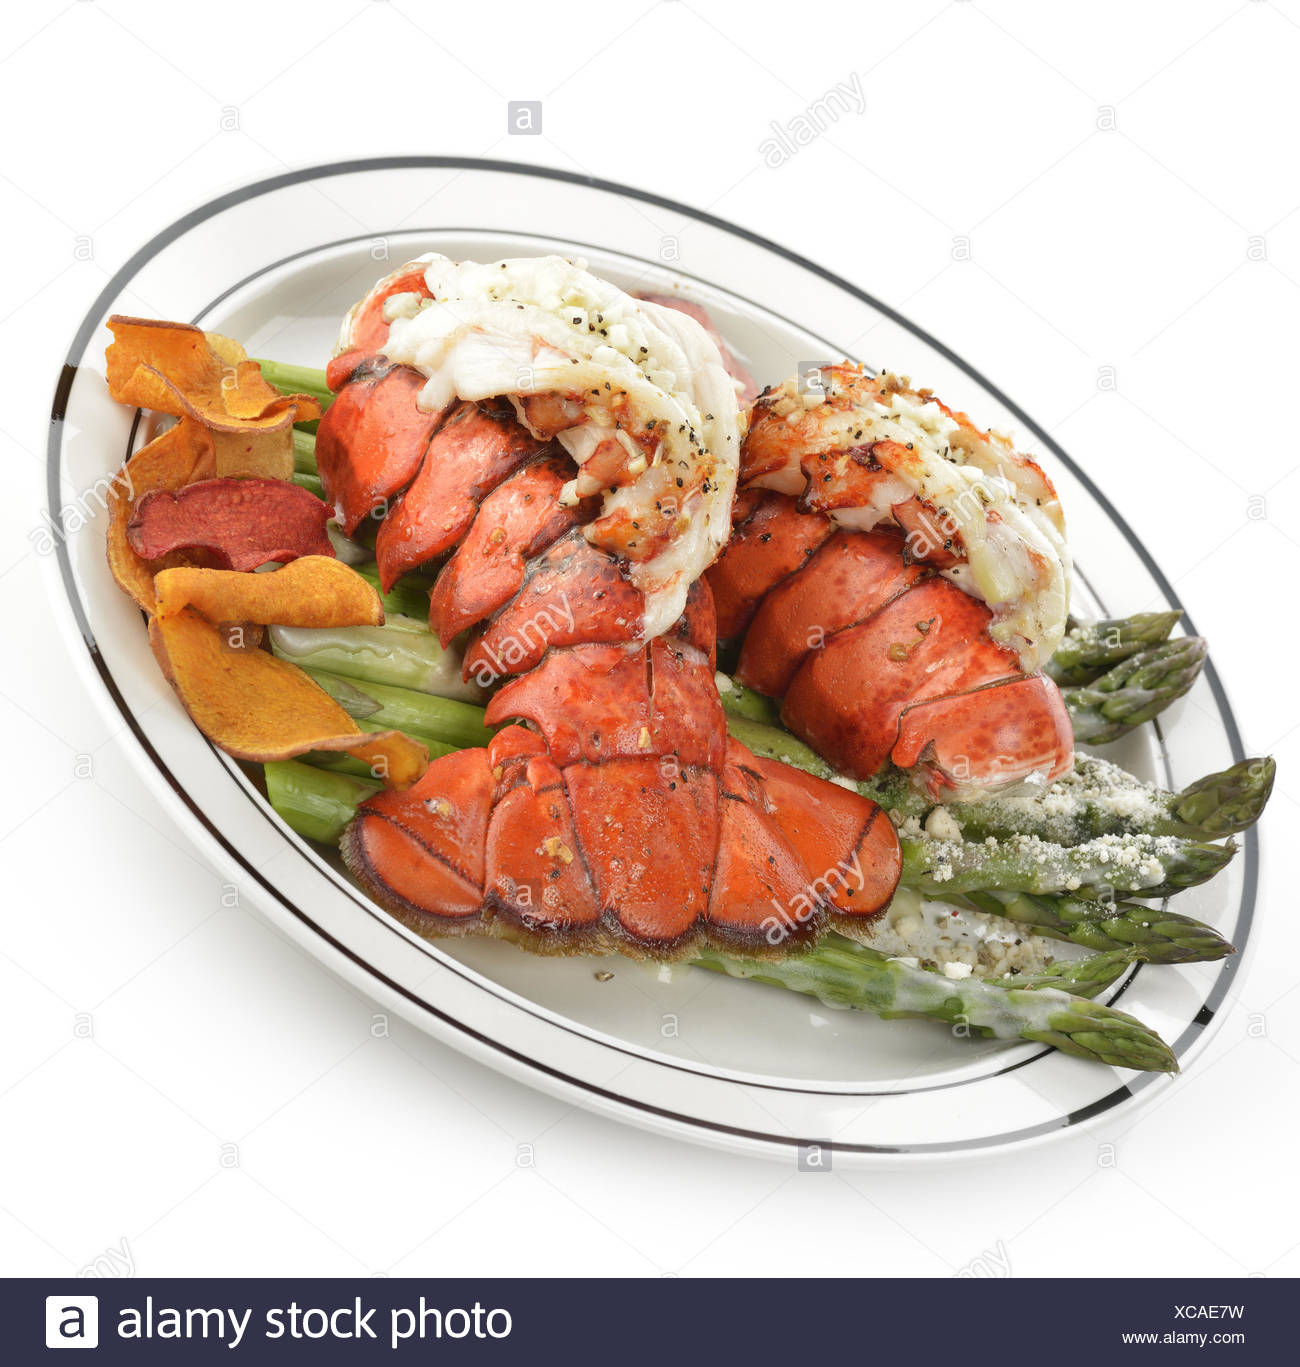 Lobster Tail Plate Stock Photos & Lobster Tail Plate Stock ...